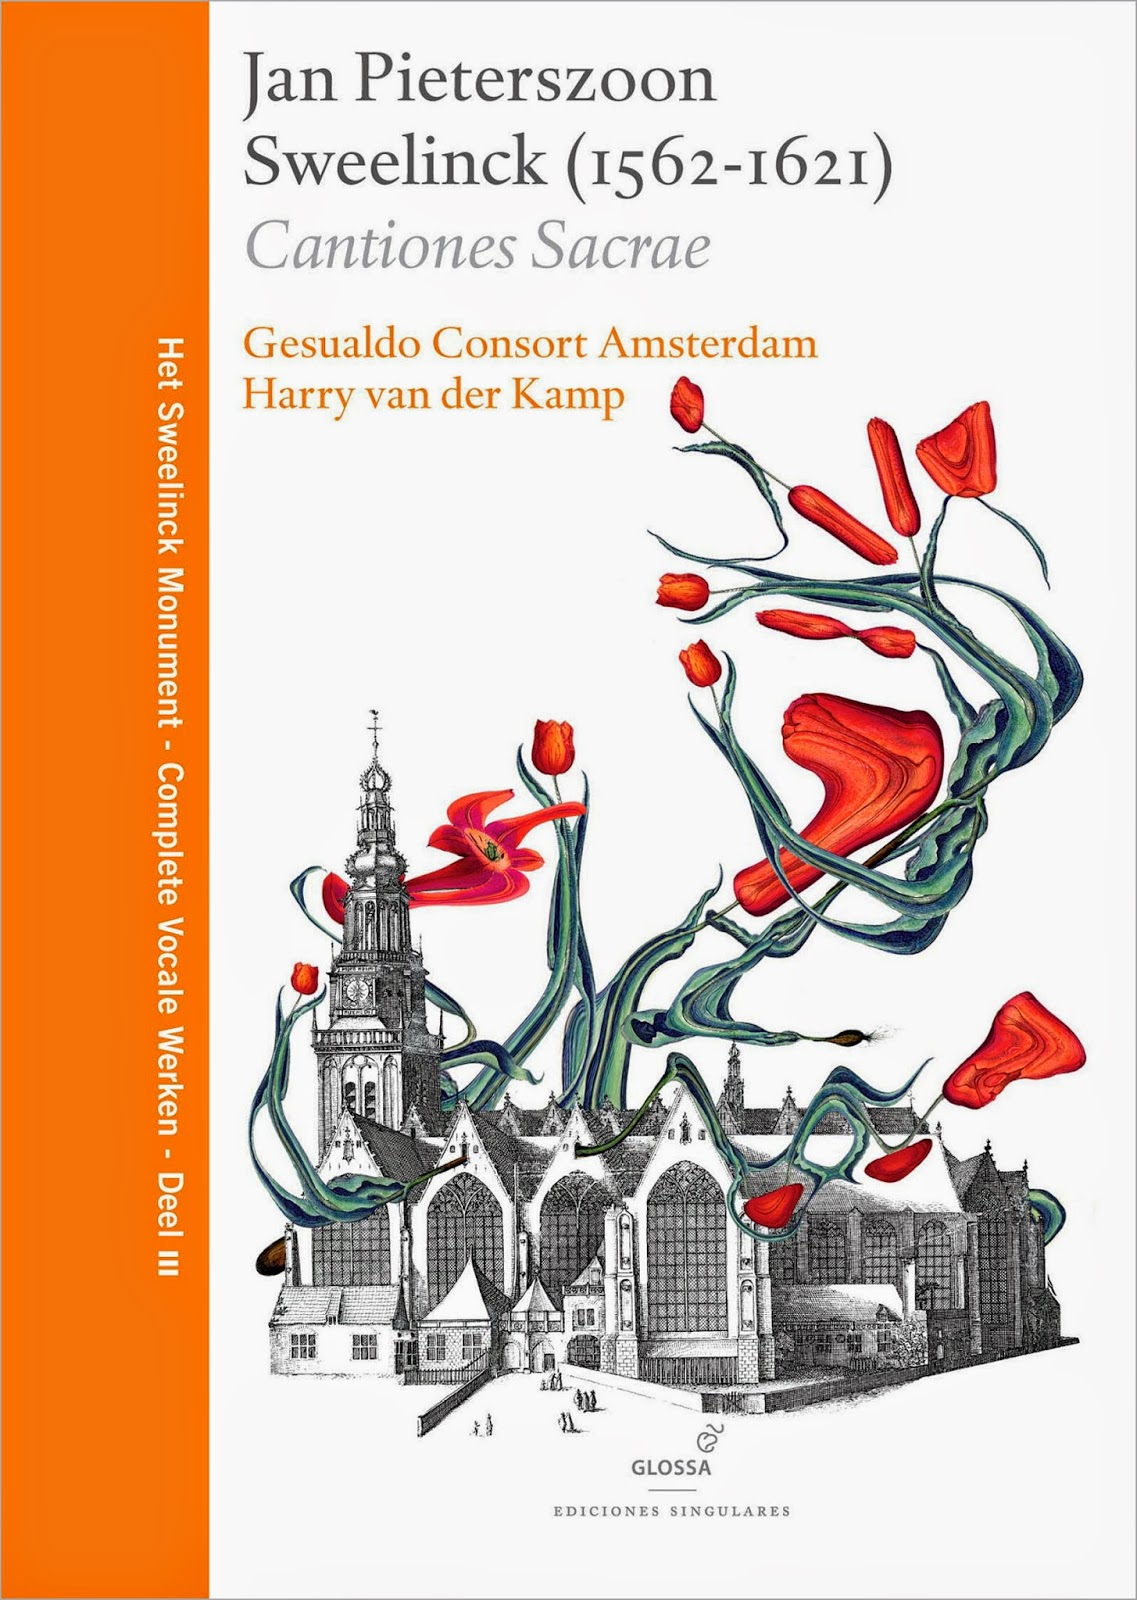 http://www.amazon.de/gp/offer-listing/B004GTOWRI/?ie=UTF8&camp=1638&creative=19454&keywords=sweelinck%20glossa&linkCode=ur2&qid=1424623890&site-redirect=de&sr=8-10&tag=bonsplanscl00-21&linkId=XL6UOYEAZ4NFGXB2